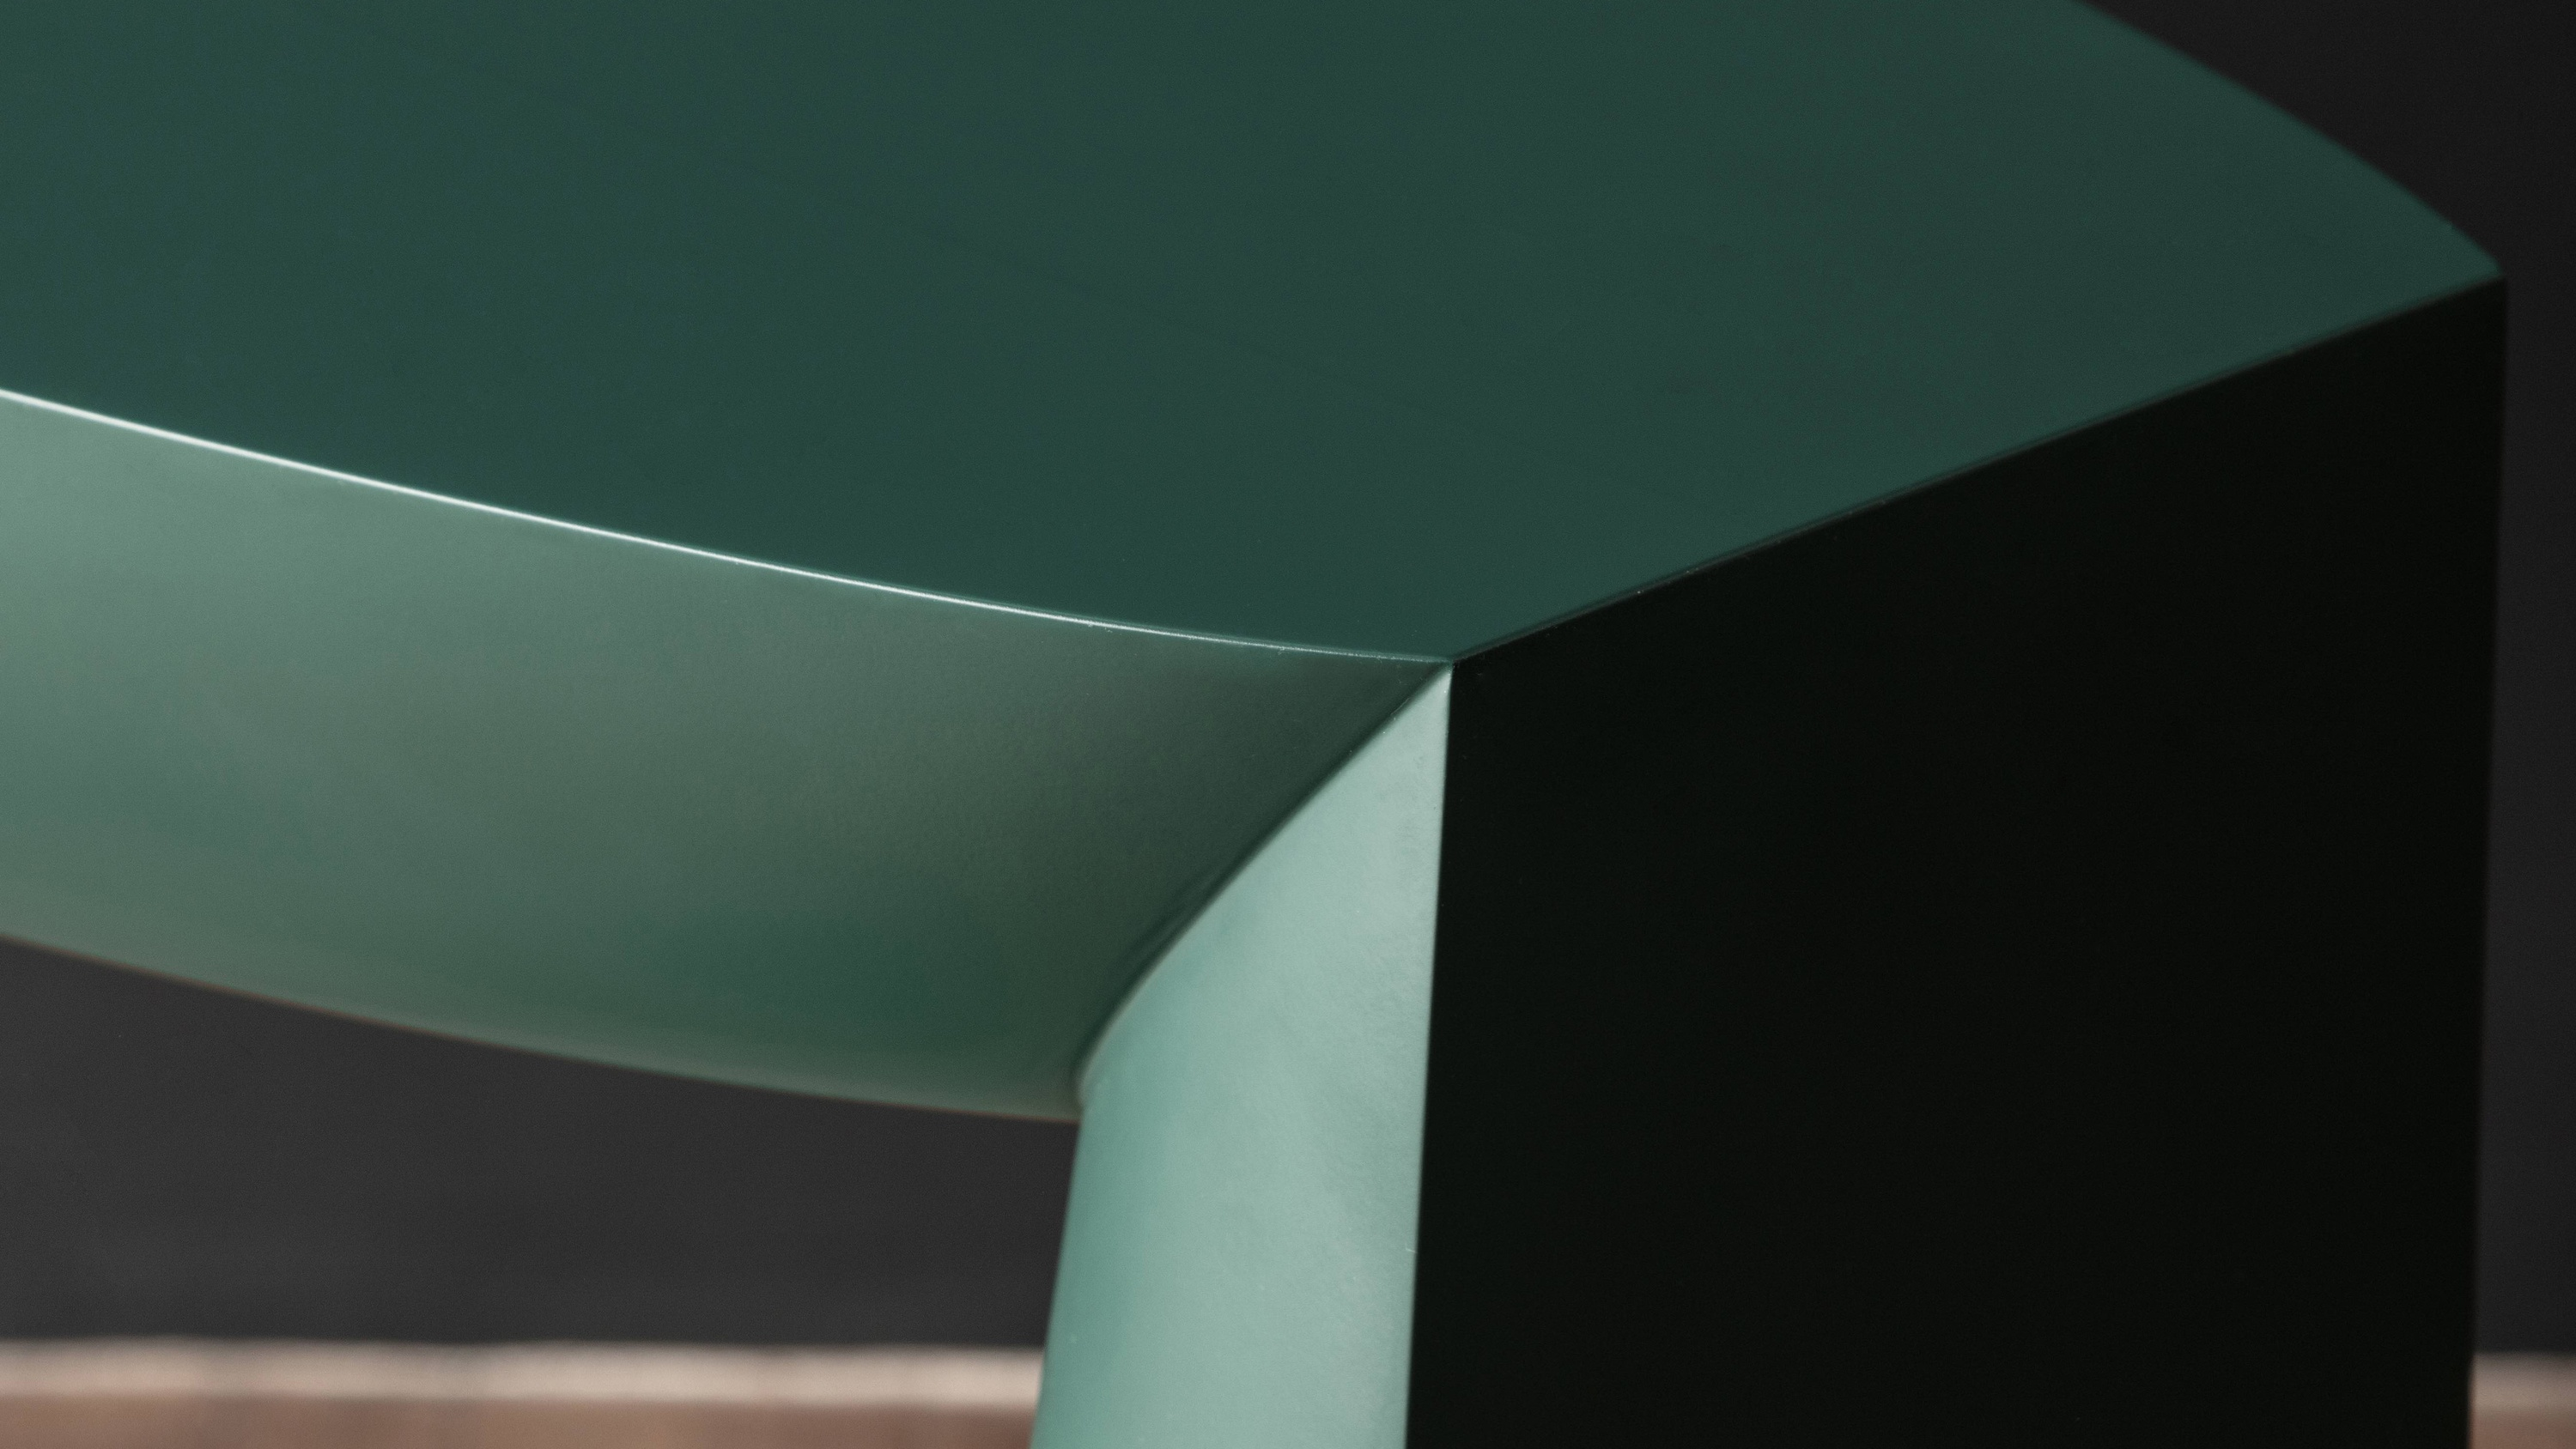 CONSOLE GREEN